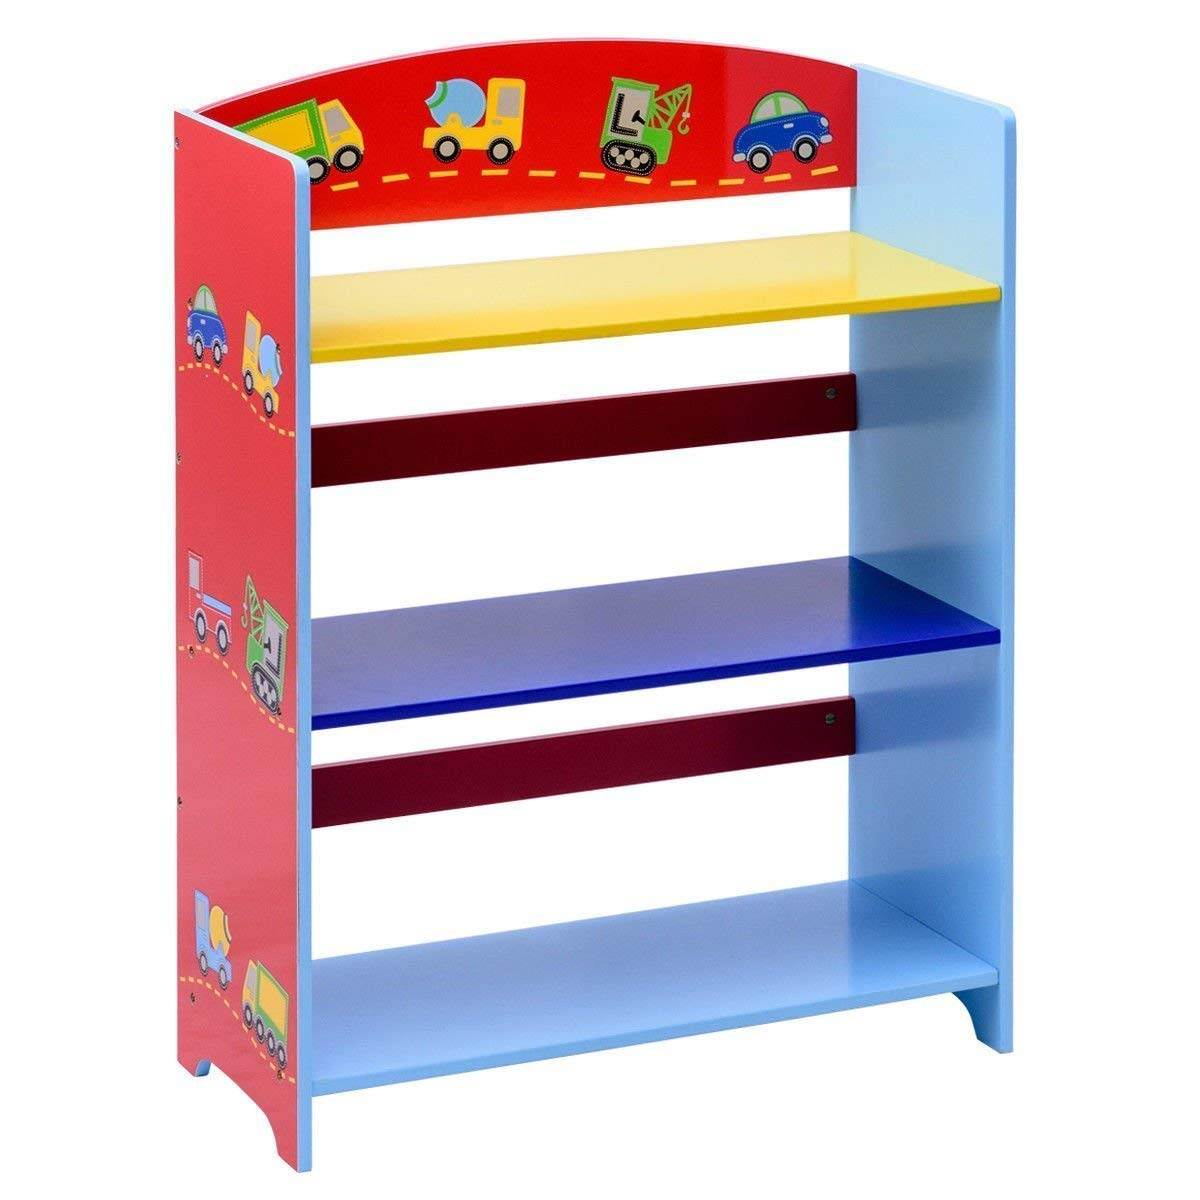 Costzon Kids Bookshelf, 3-Tier Cars Book Rack, Adorable Corner Book Organizer